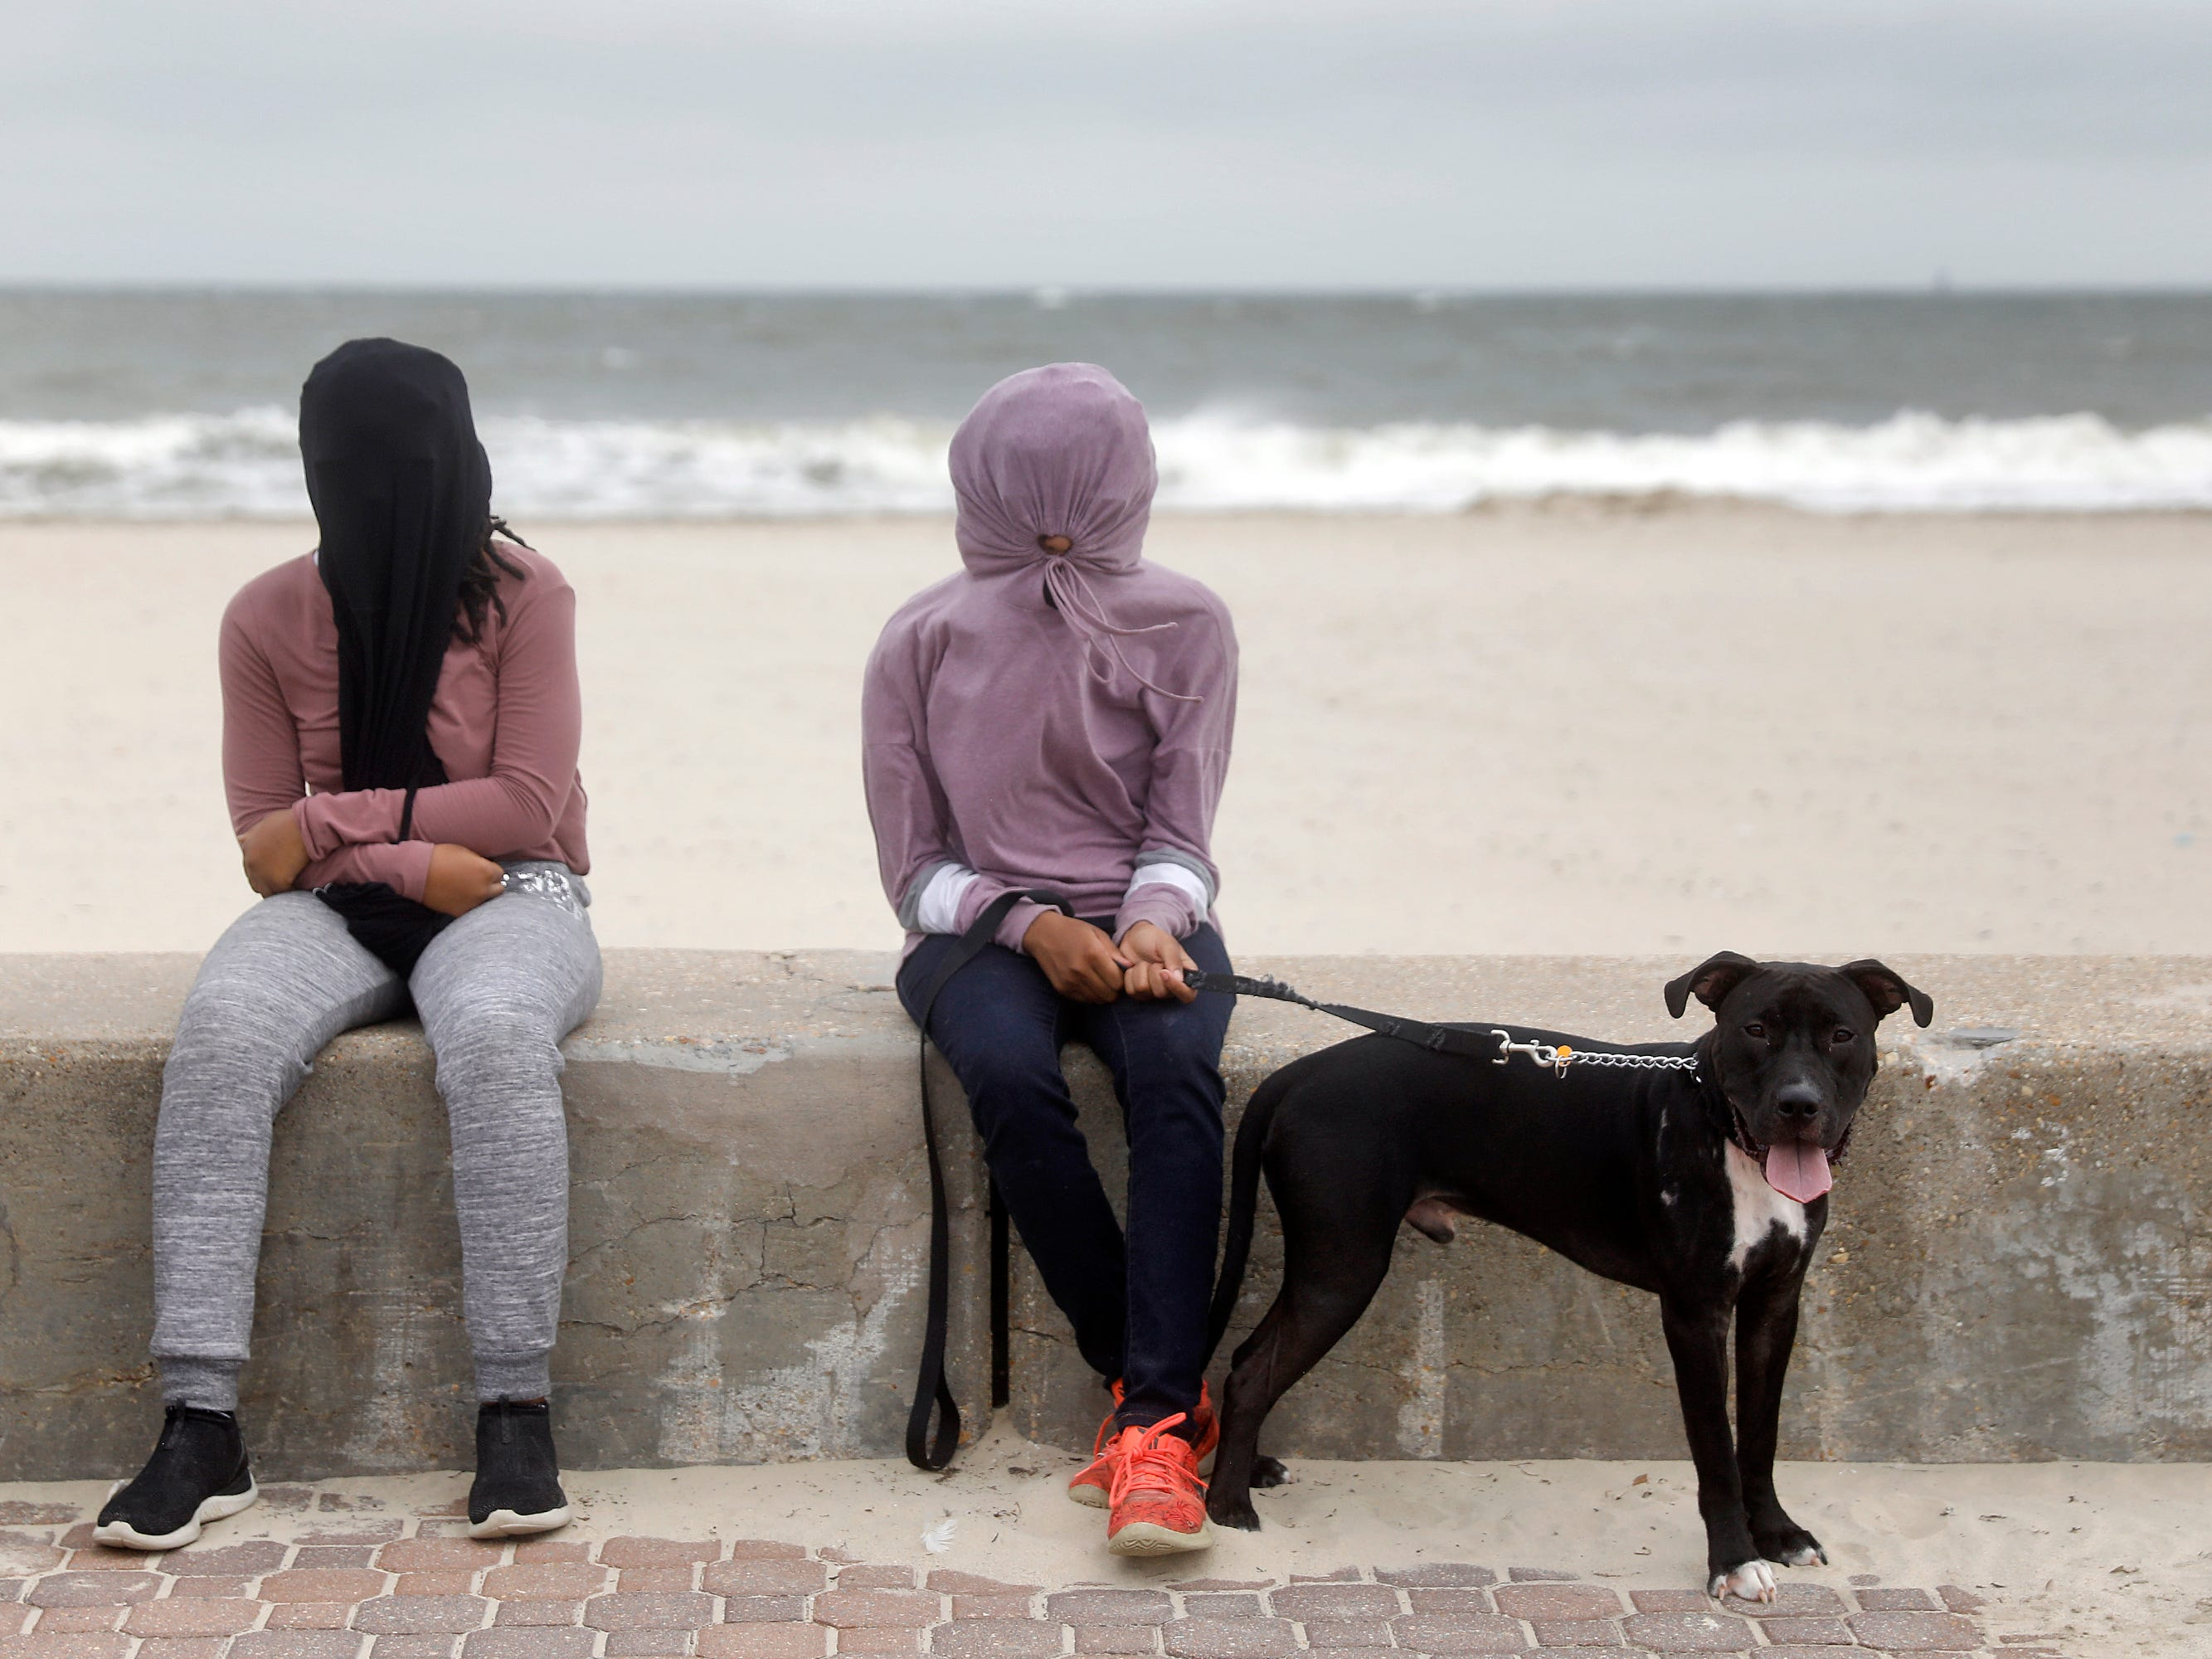 Josephine Mitchell, left, and Claudia Mitchell use clothing to cover their eyes as sand blows through the air at Buckroe Beach on Sept. 13, 2018.